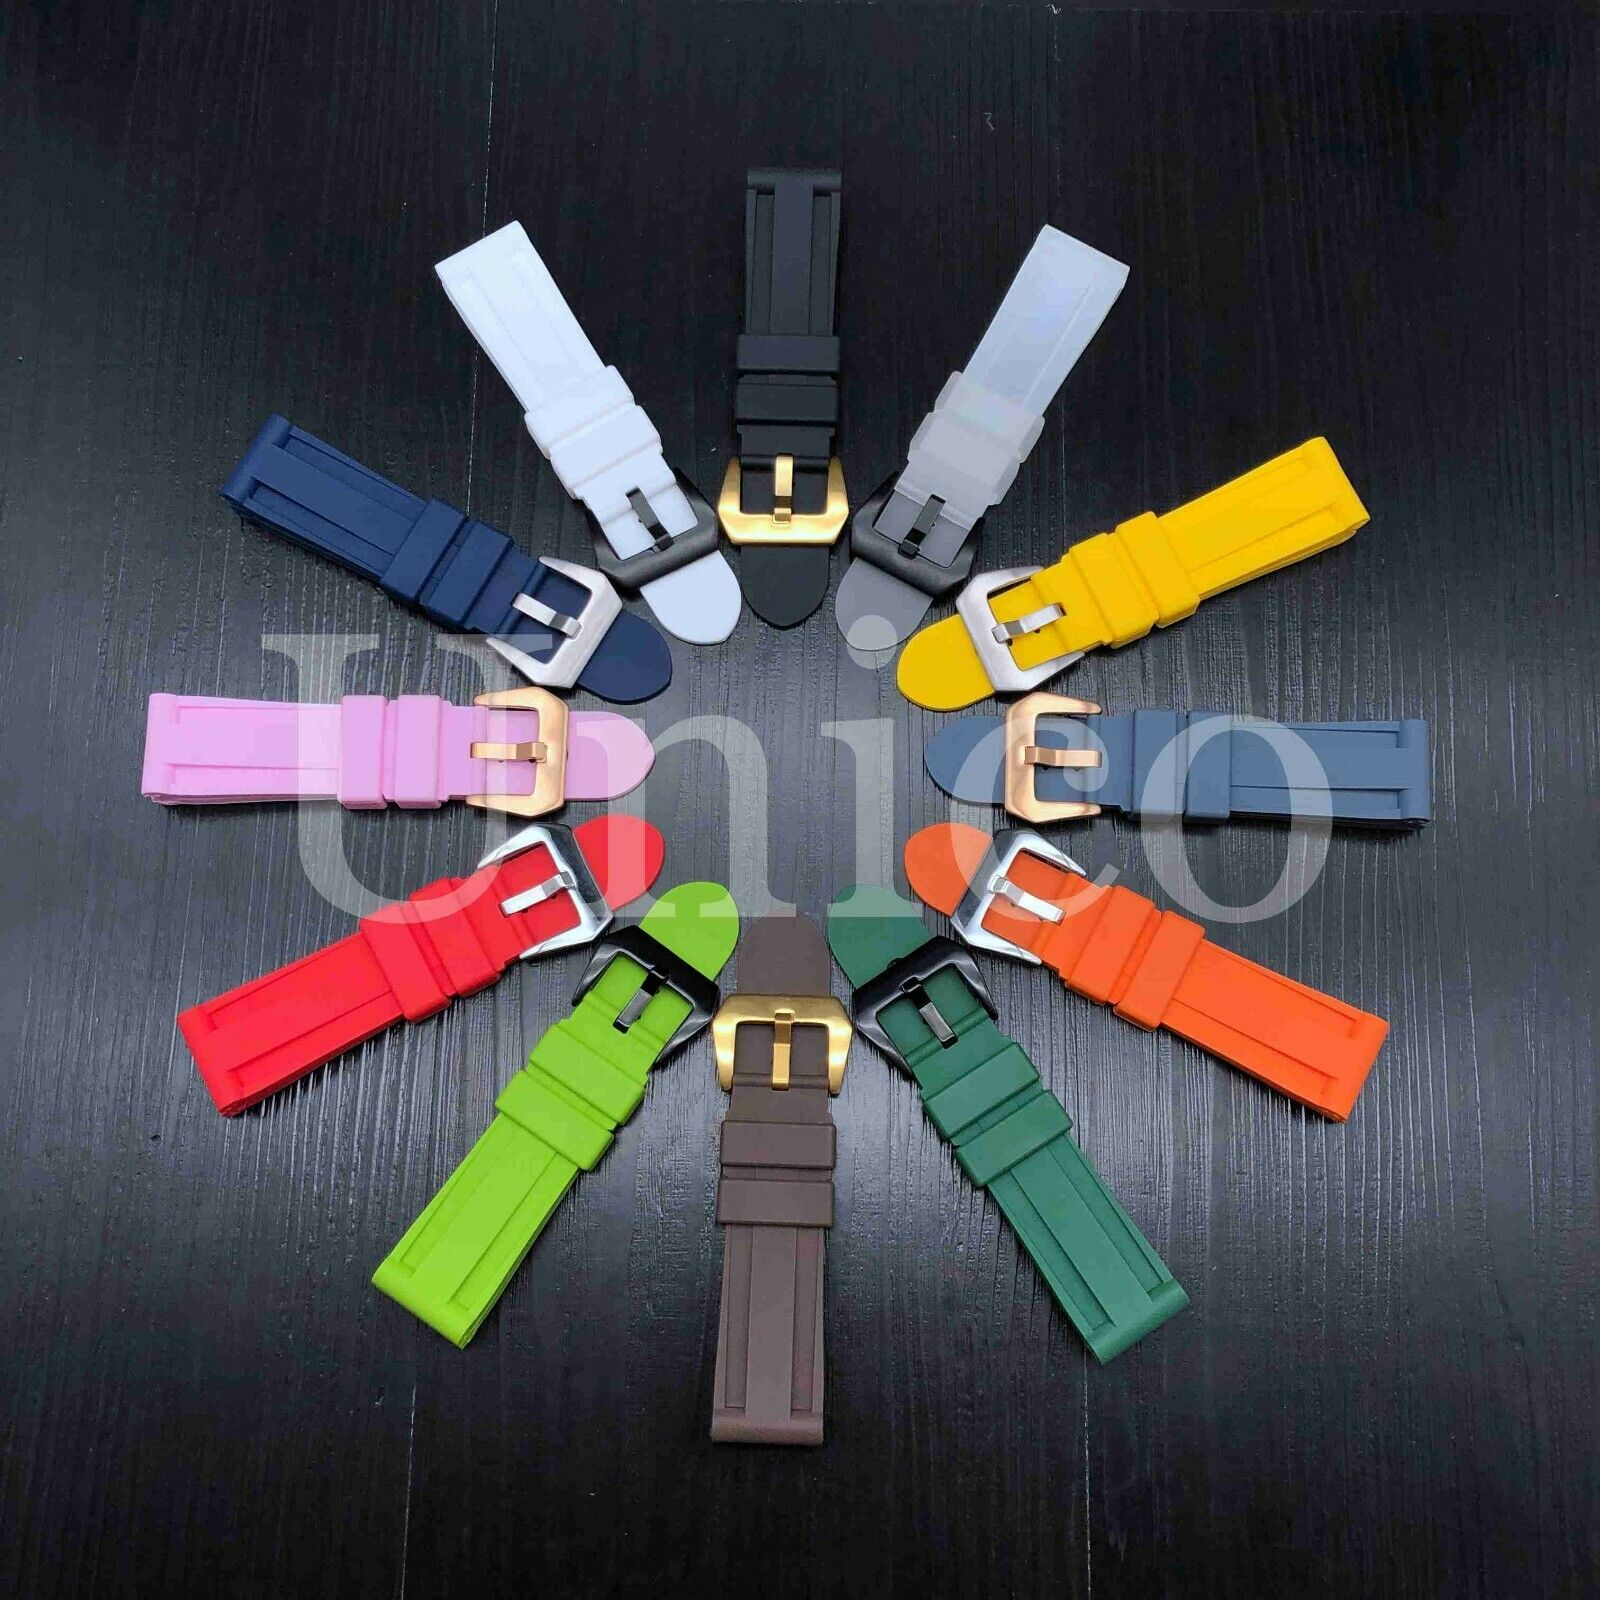 22 24 26 MM Rubber Strap Band Soft fits for Panerai Submersi